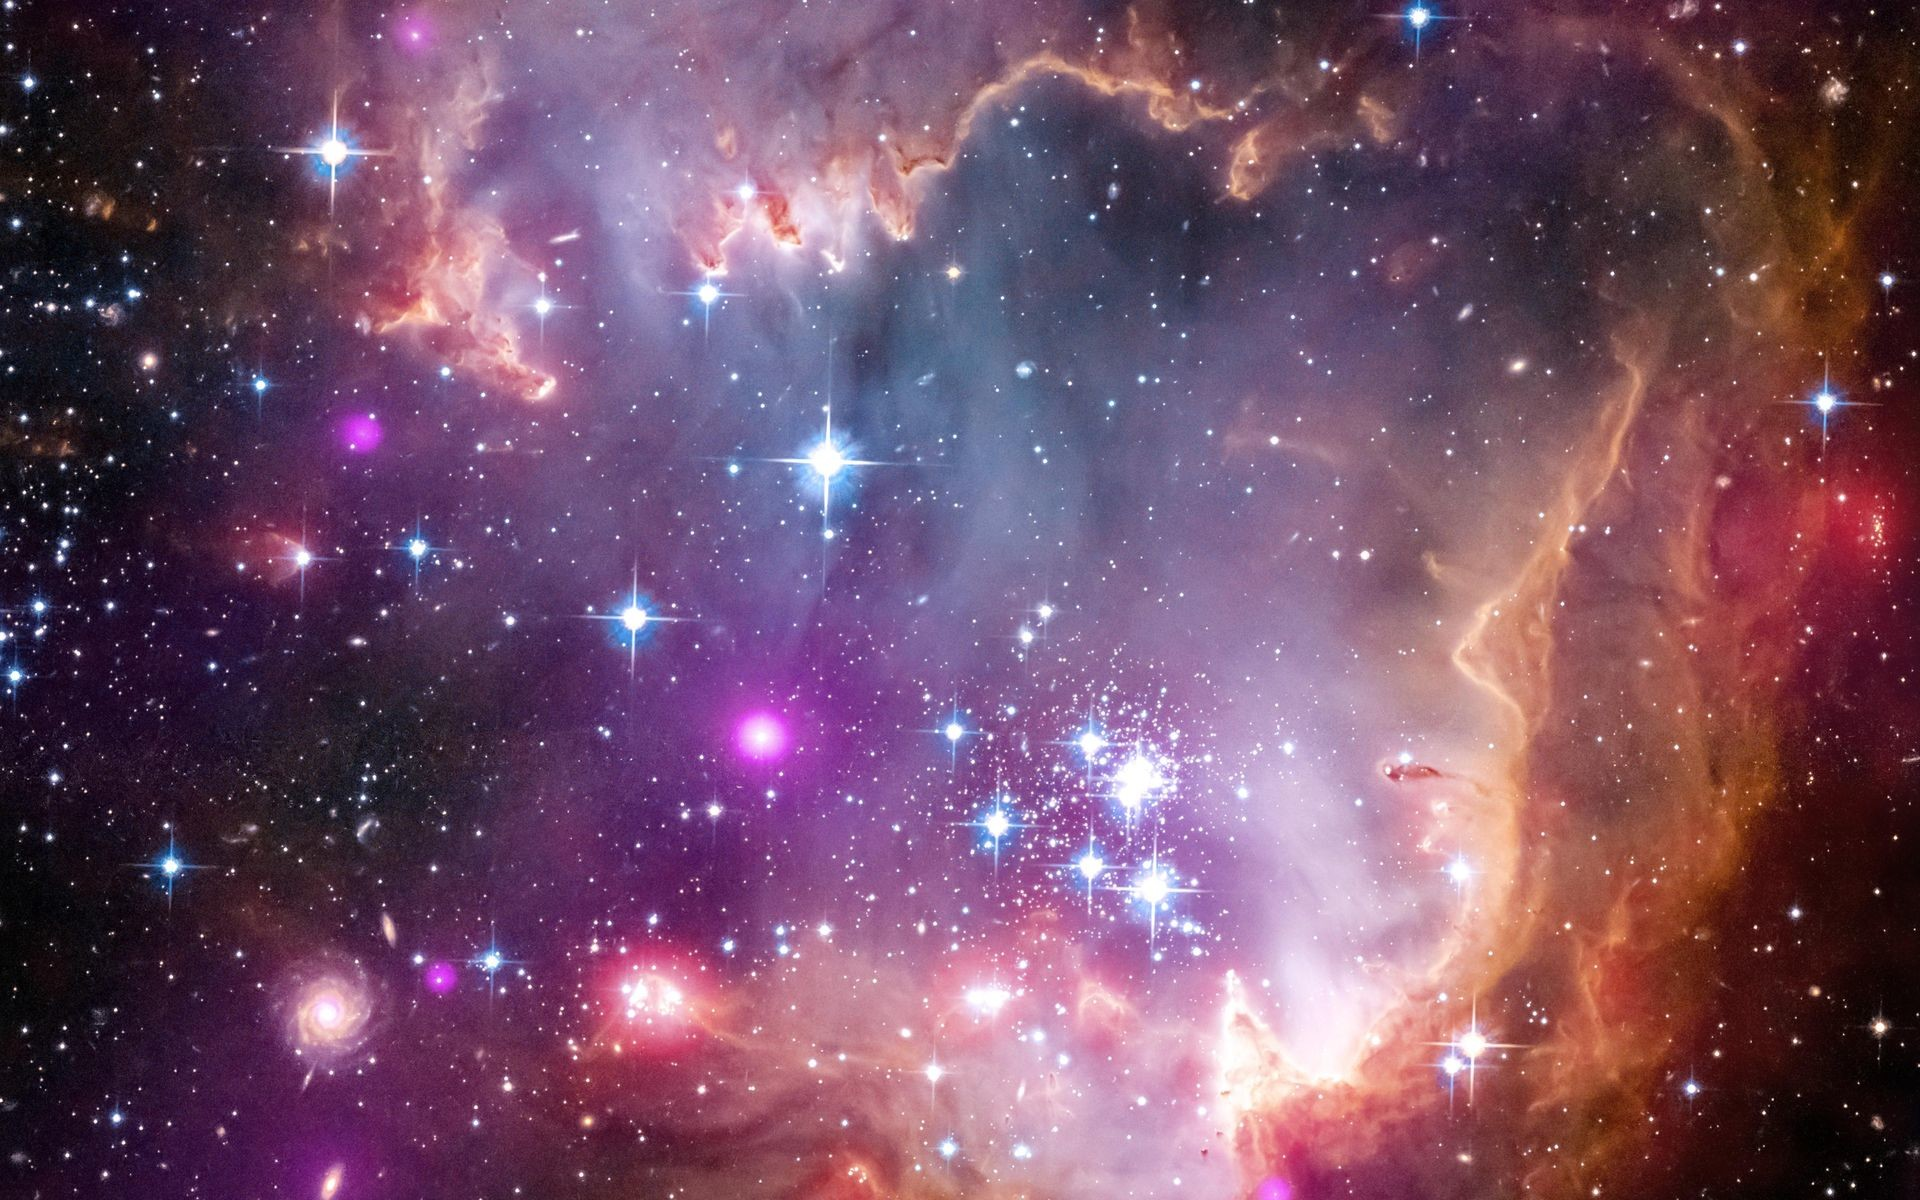 1920x1200 The tip of the 'wing' of the Small Magellanic Cloud galaxy is dazzling in